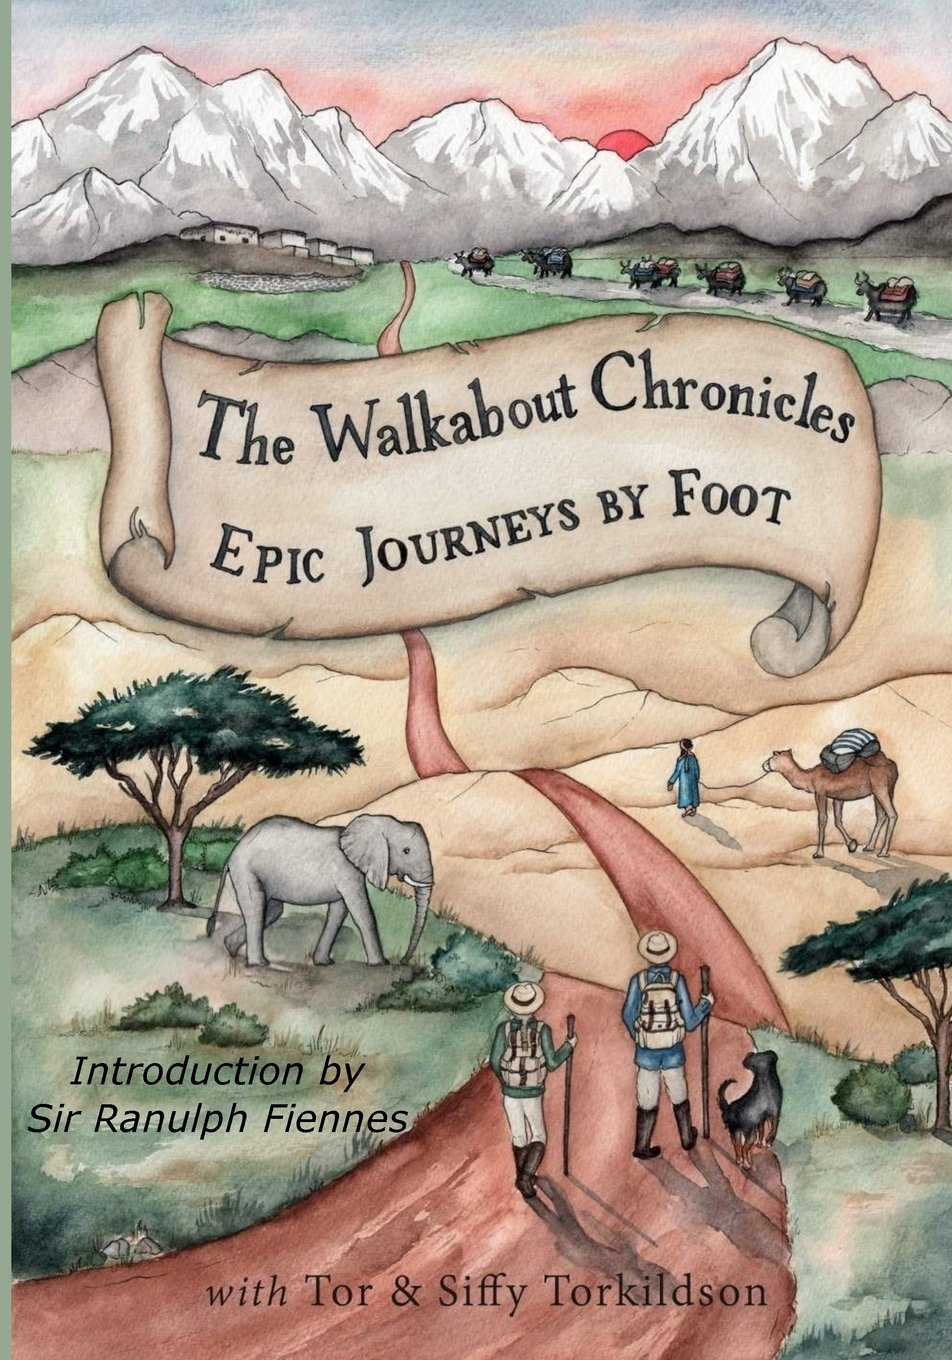 The Walkabout Chronicles: Epic Journeys by Foot (The Chronicles Series) (Volume 1) pdf